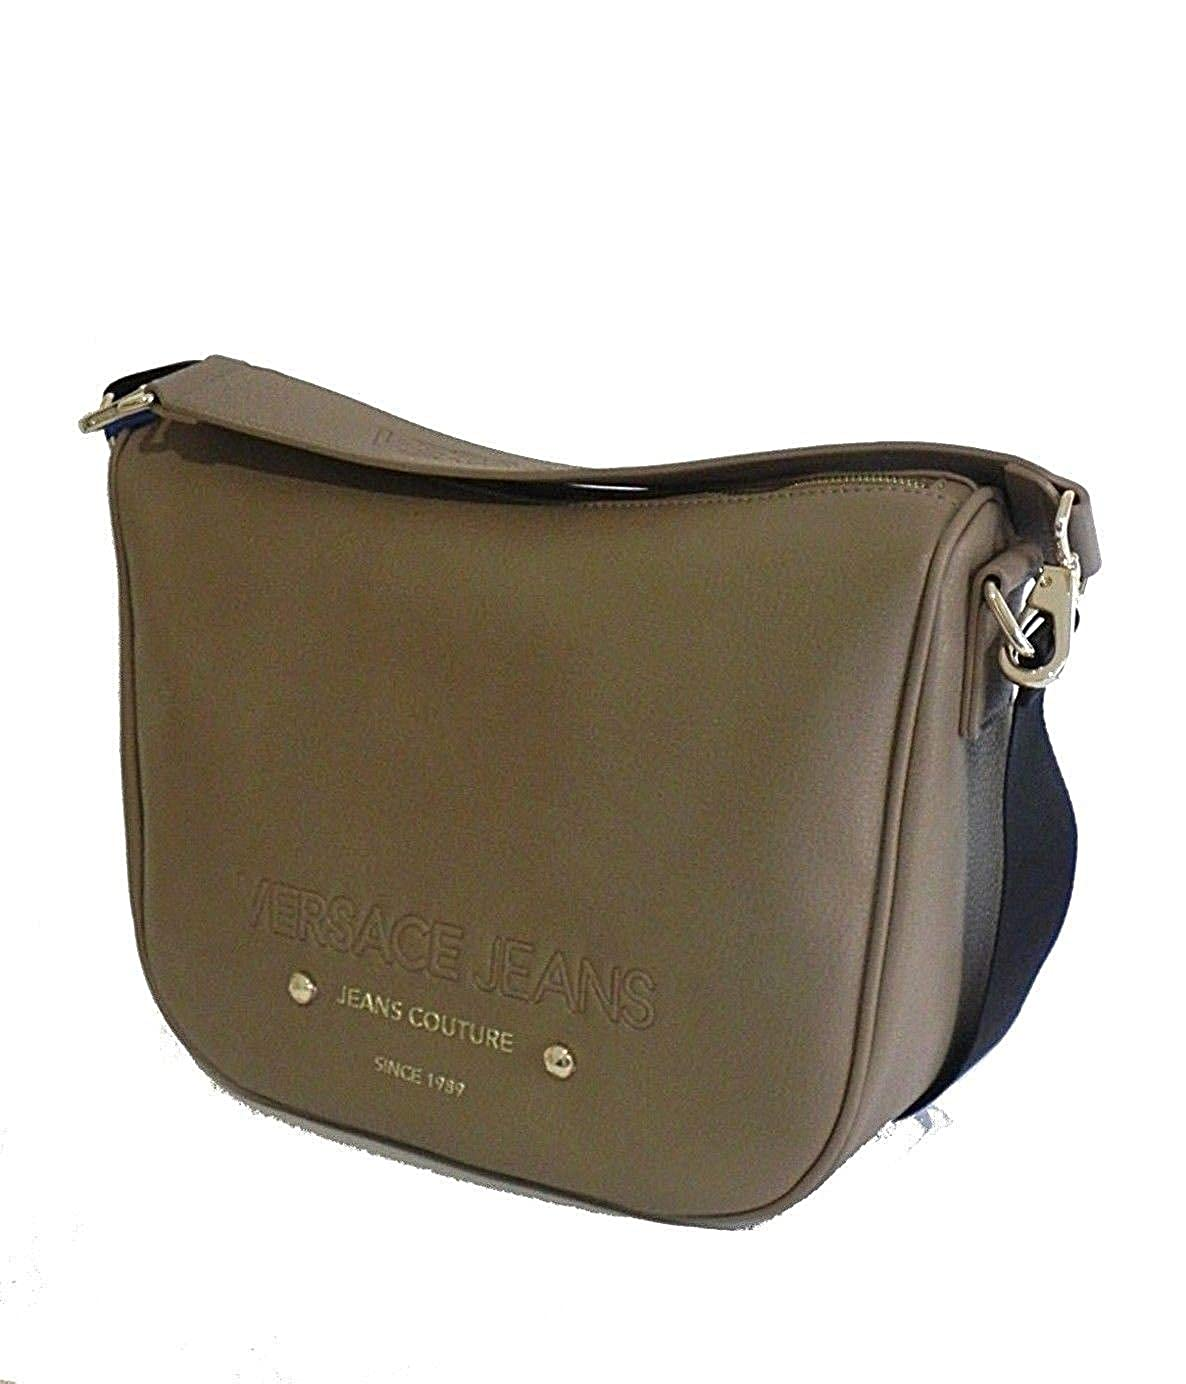 6ab0a7df4d43 Amazon.com  Versace EE1VSBBS4 E723 Taupe Messenger Bag for Womens  Shoes